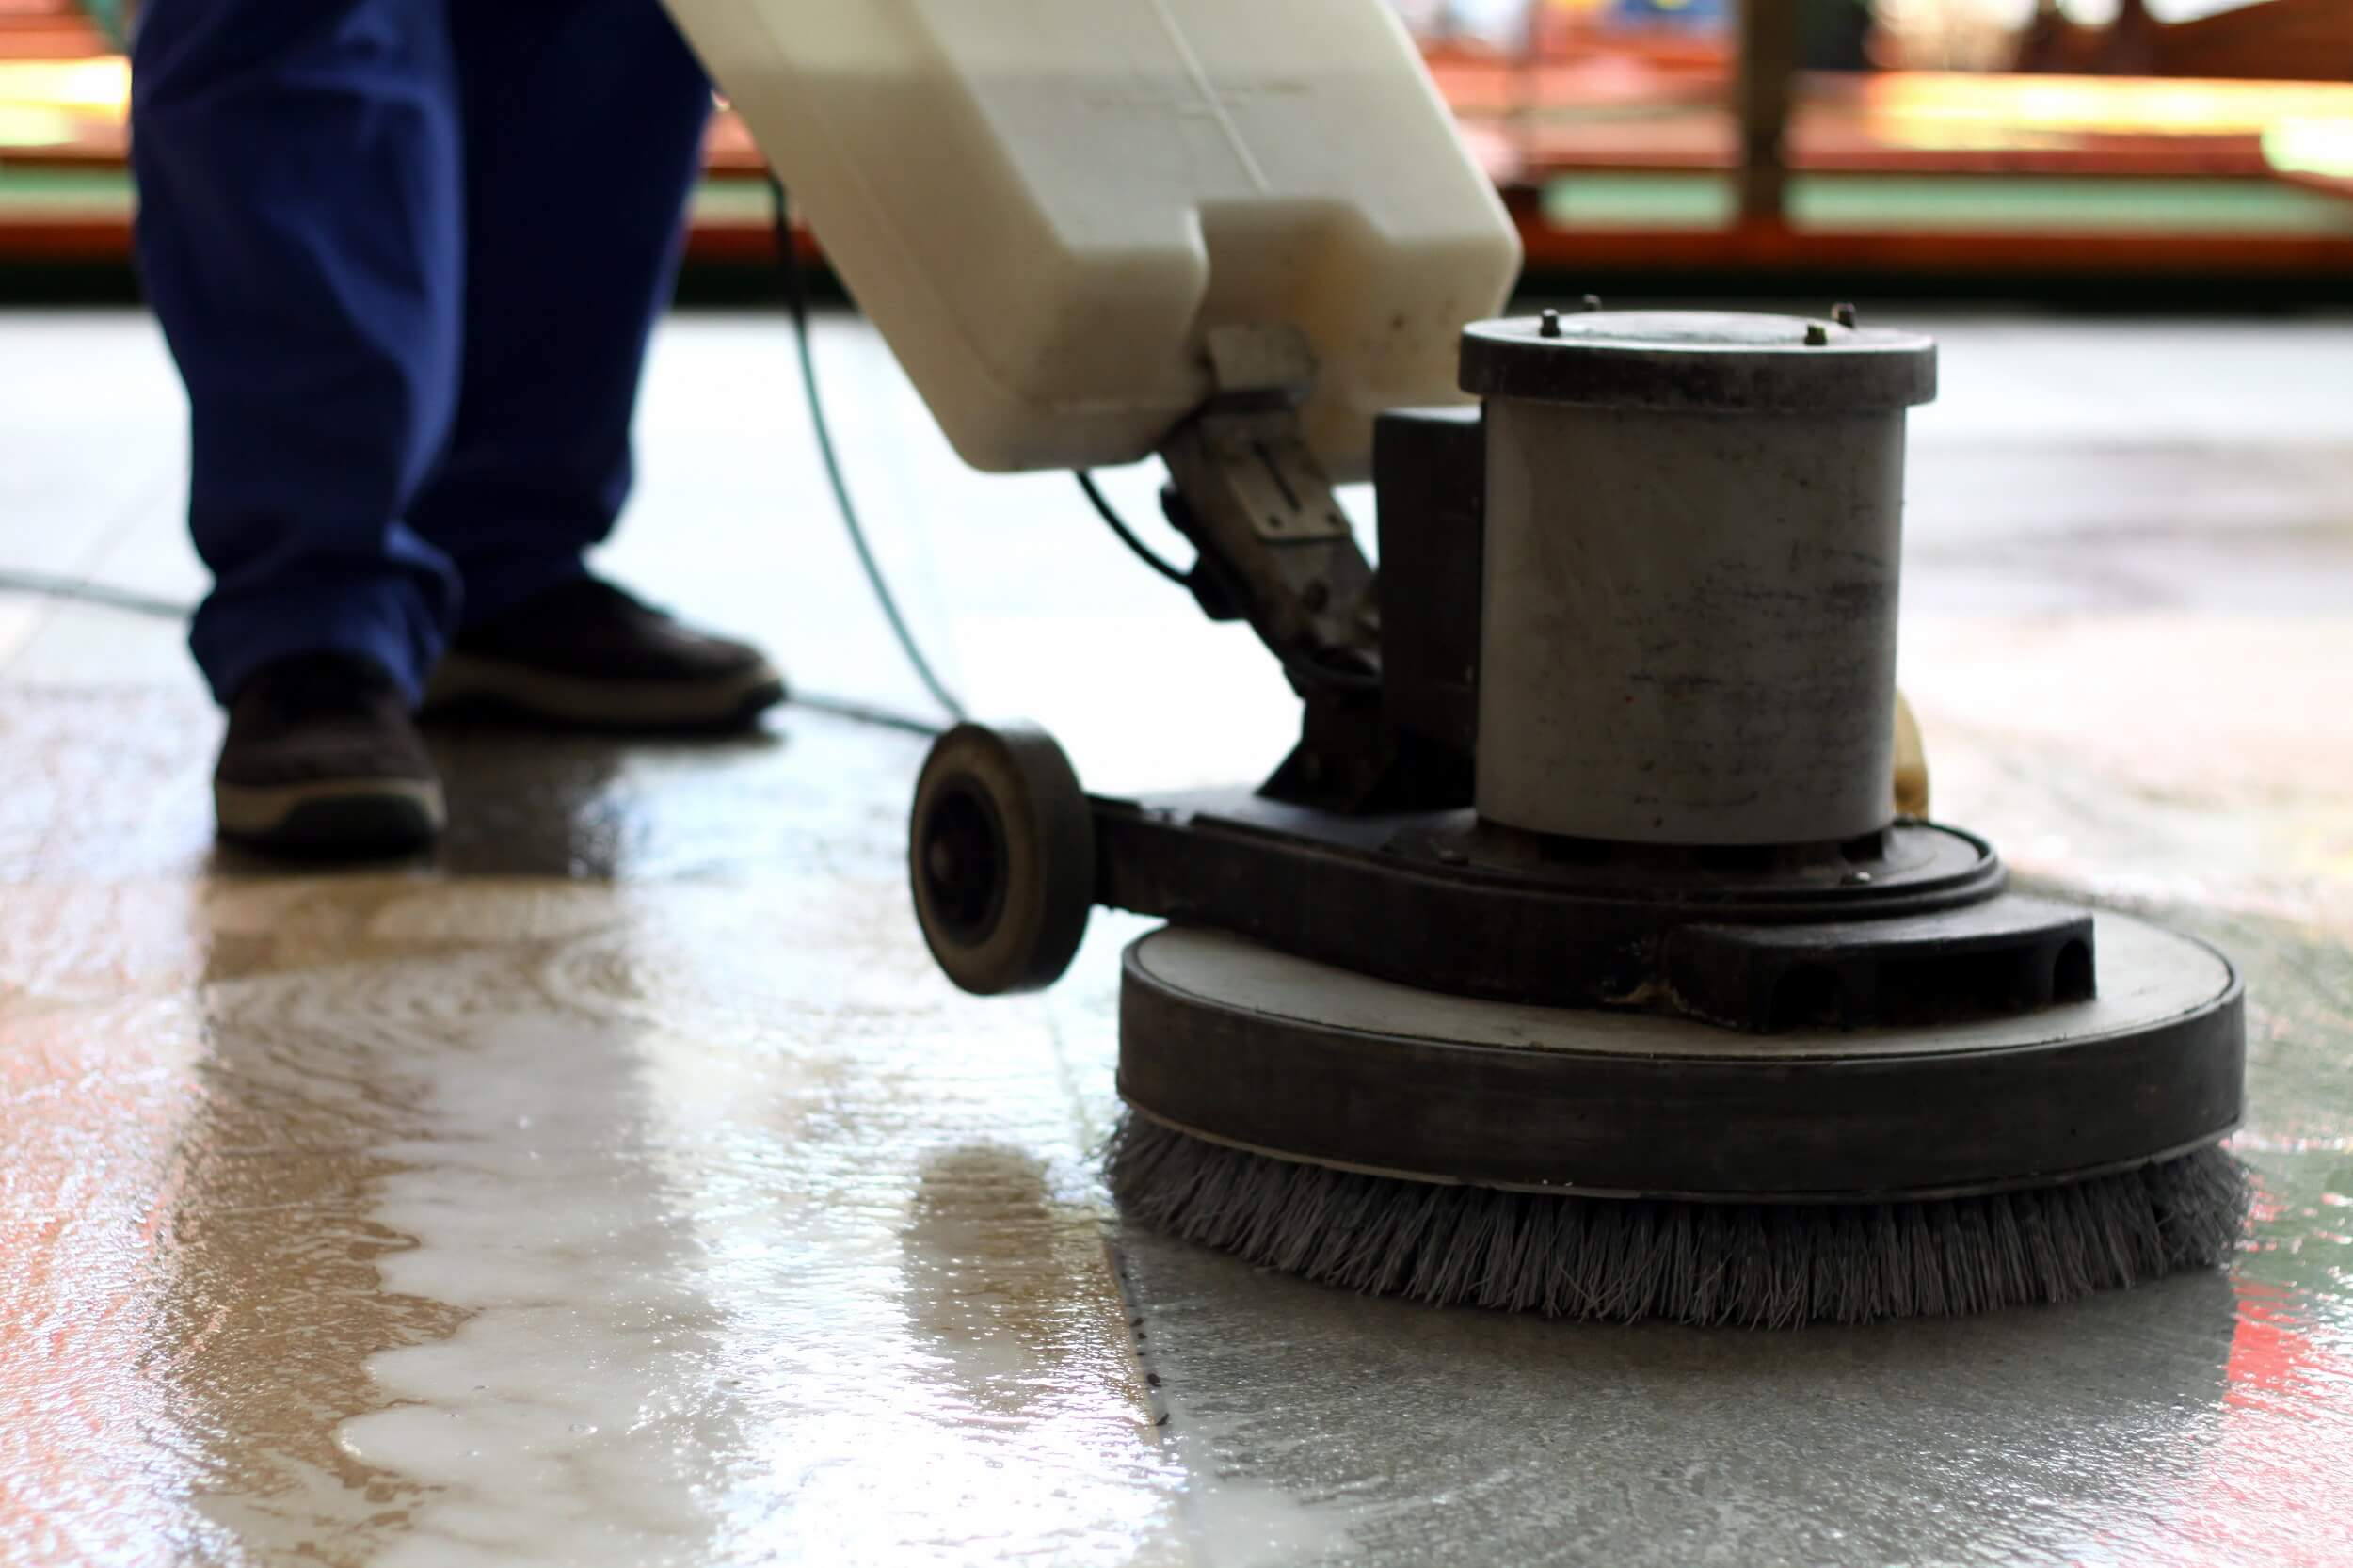 Choose the company that offers eco-friendly and sustainable office cleaning services